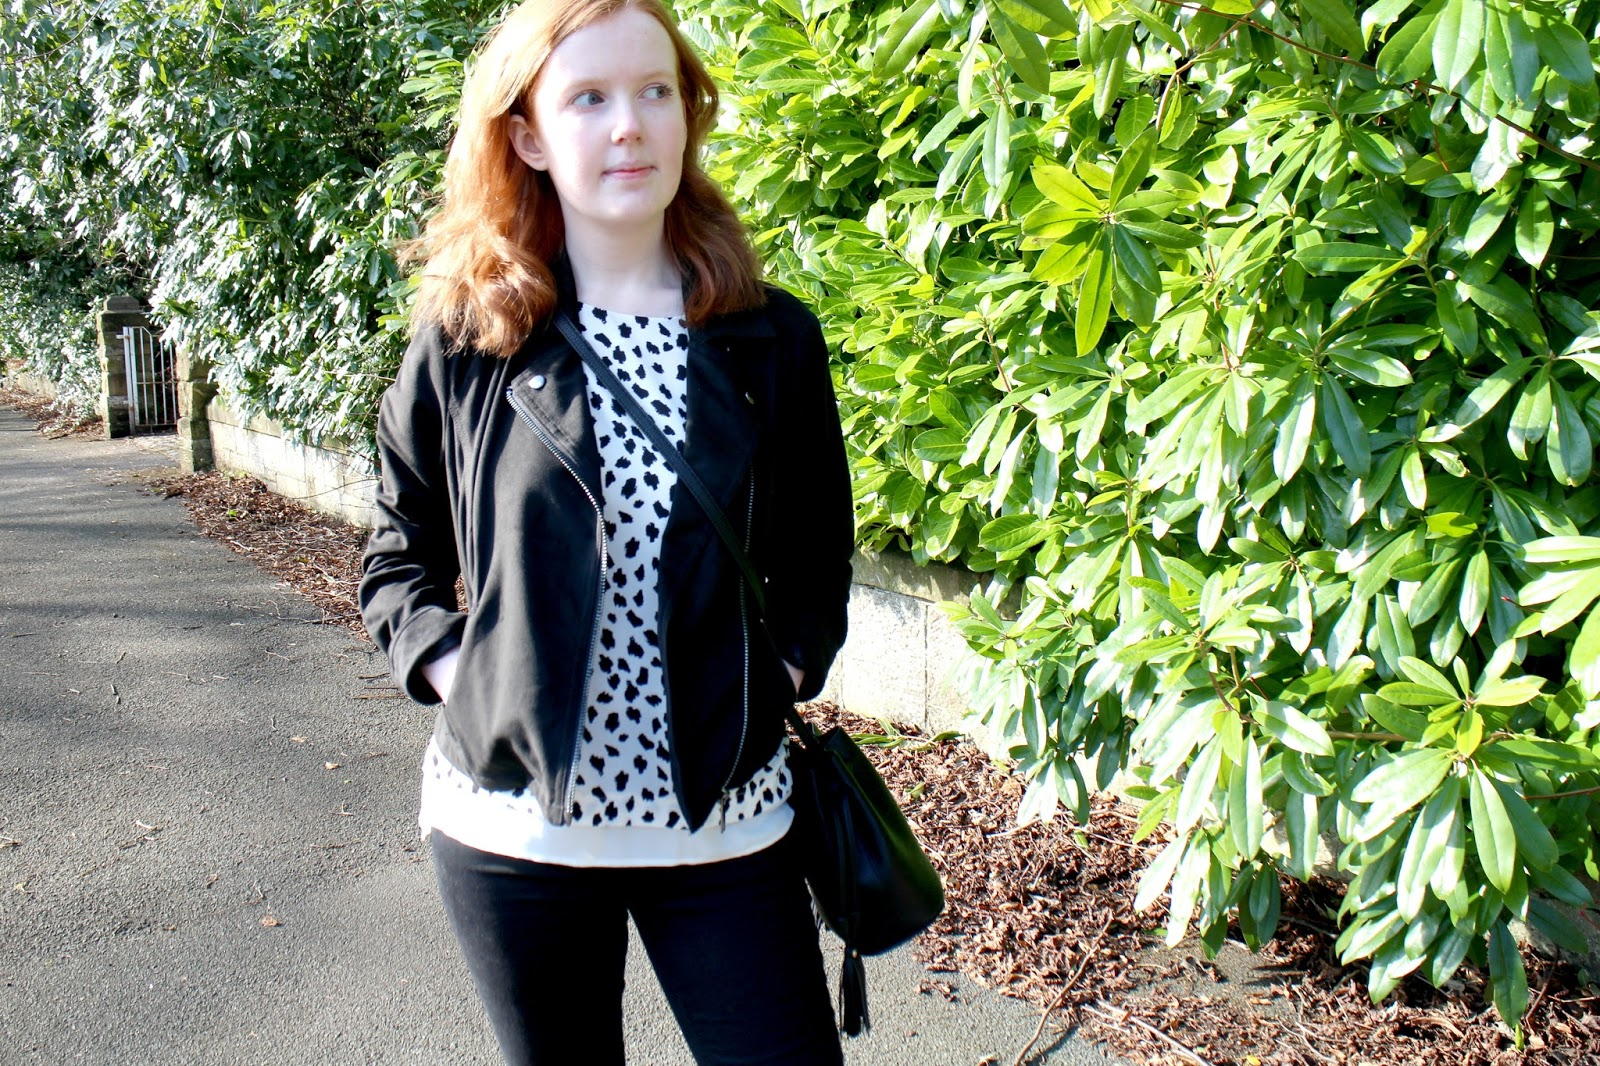 Scottish Redhead Fashion Blogger